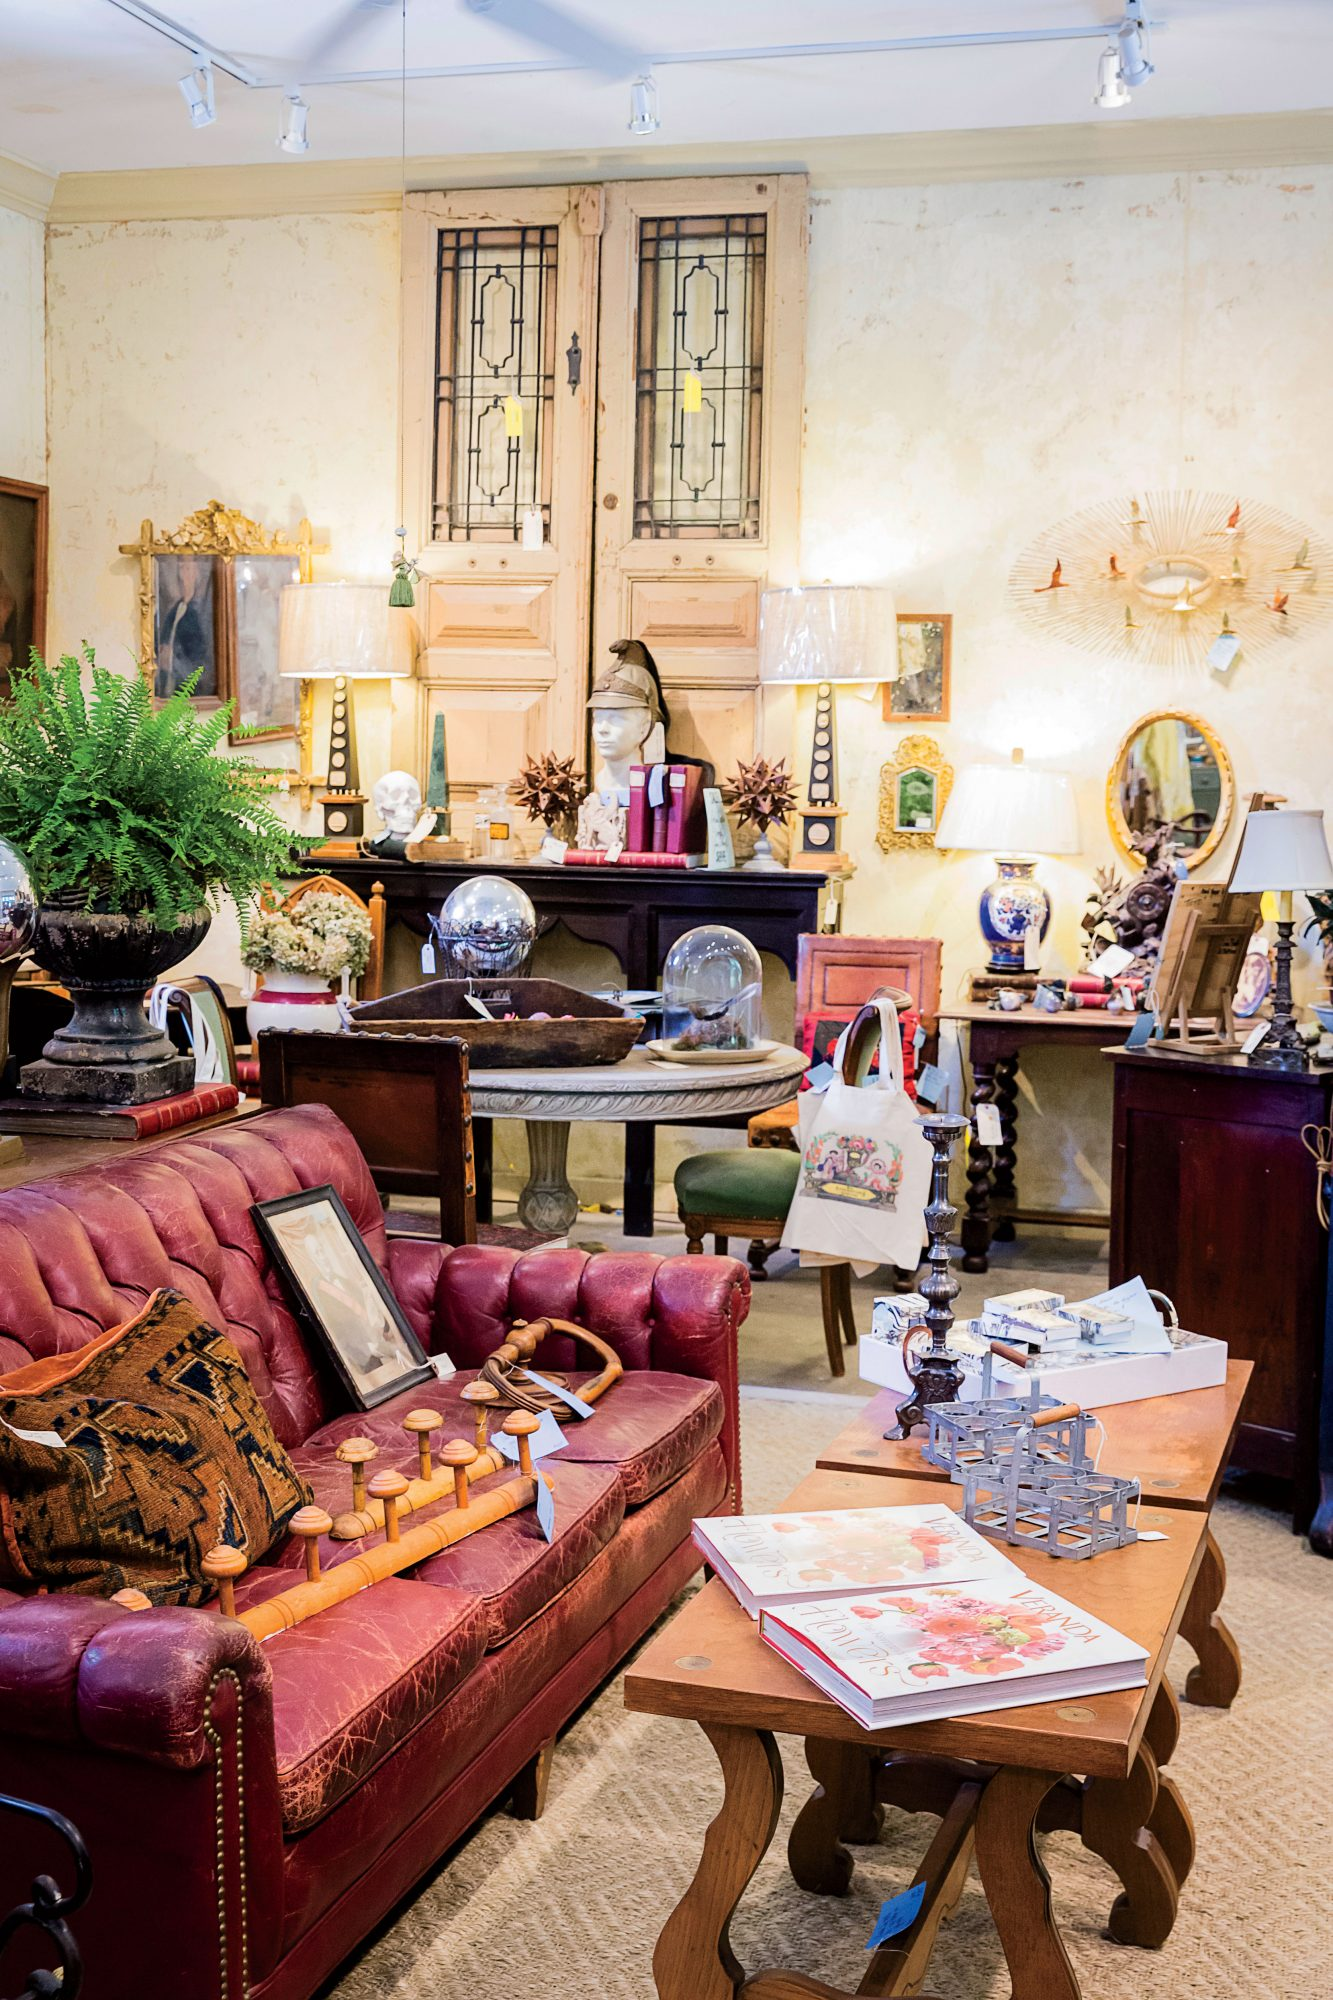 Dovetail Antiques in Cashiers, NC